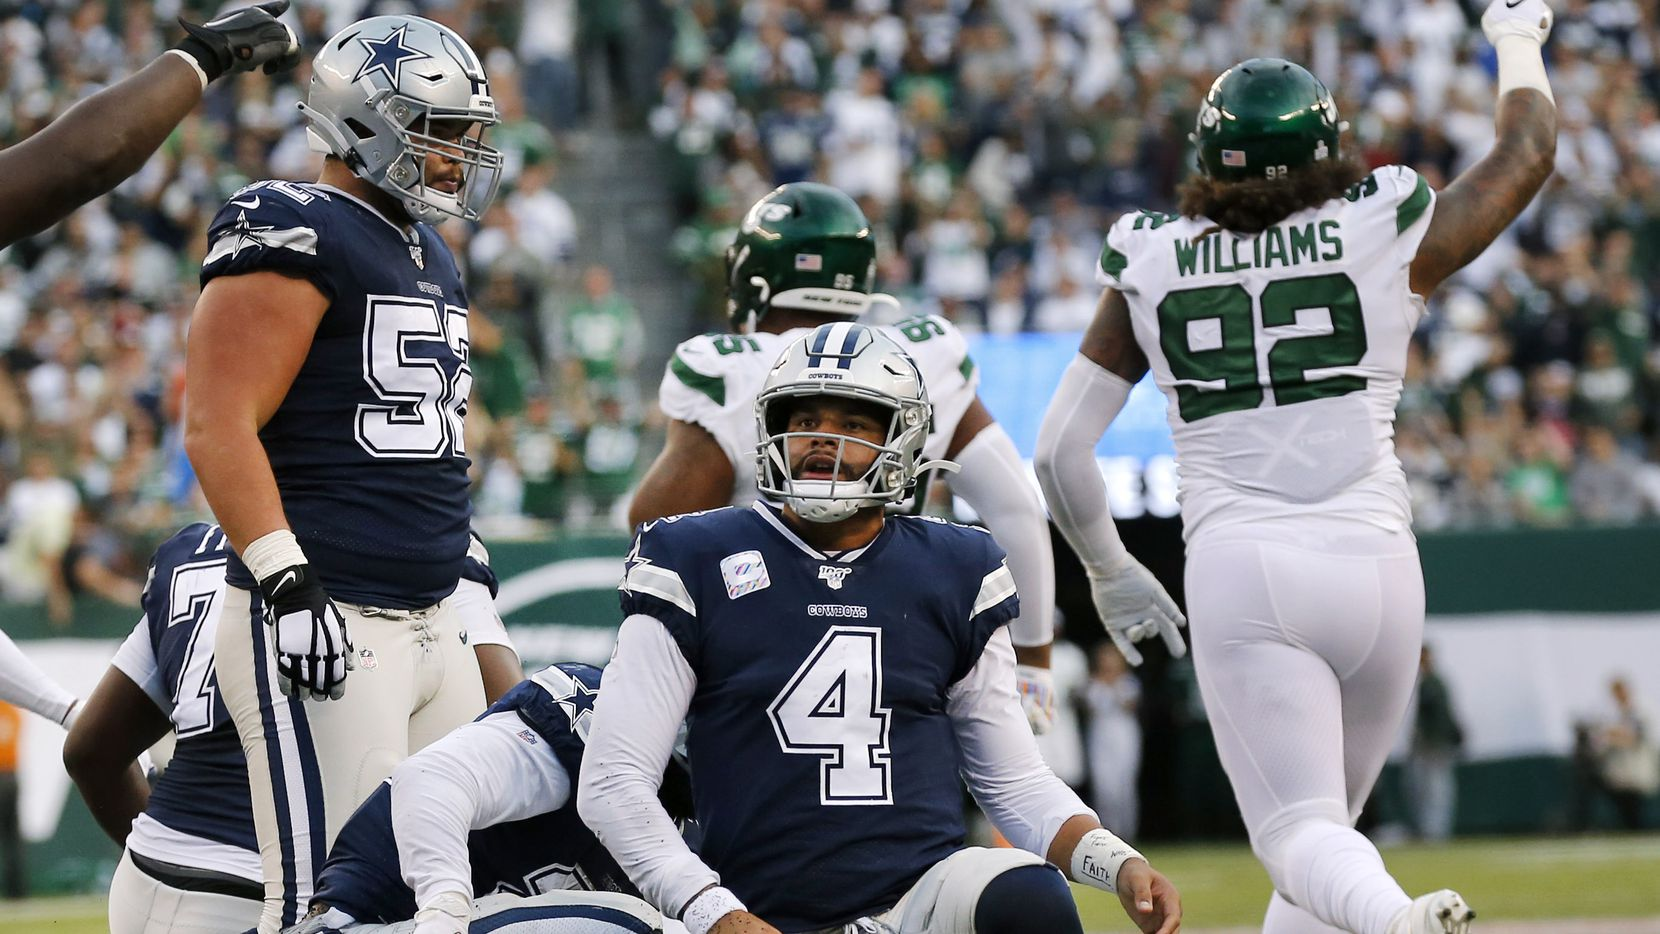 Dallas Cowboys quarterback Dak Prescott (4) gets back to his feet after being stopped short on 4th down against the New York Jets in the second quarter during at MetLife Stadium in East Rutherford, New Jersey, Sunday, October 13, 2019.